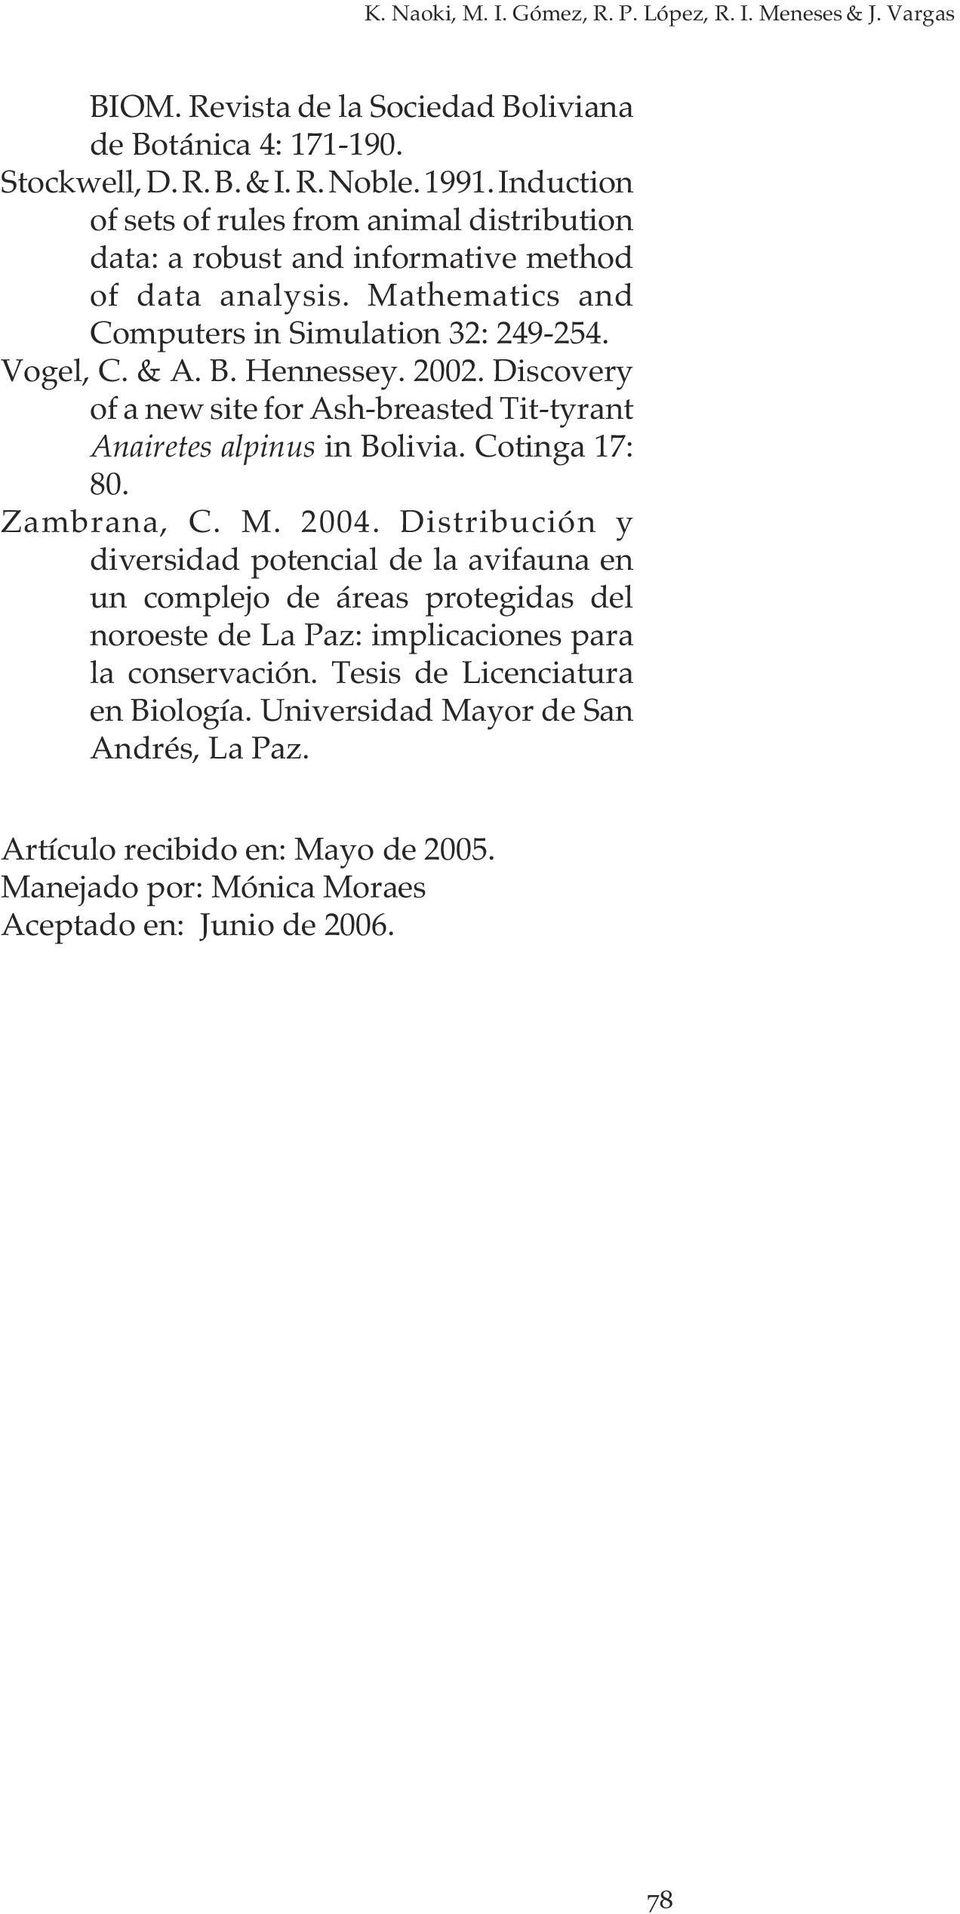 Discovery of a new site for Ash-breasted Tit-tyrant Anairetes alpinus in Bolivia. Cotinga 17: 80. Zambrana, C. M. 2004.